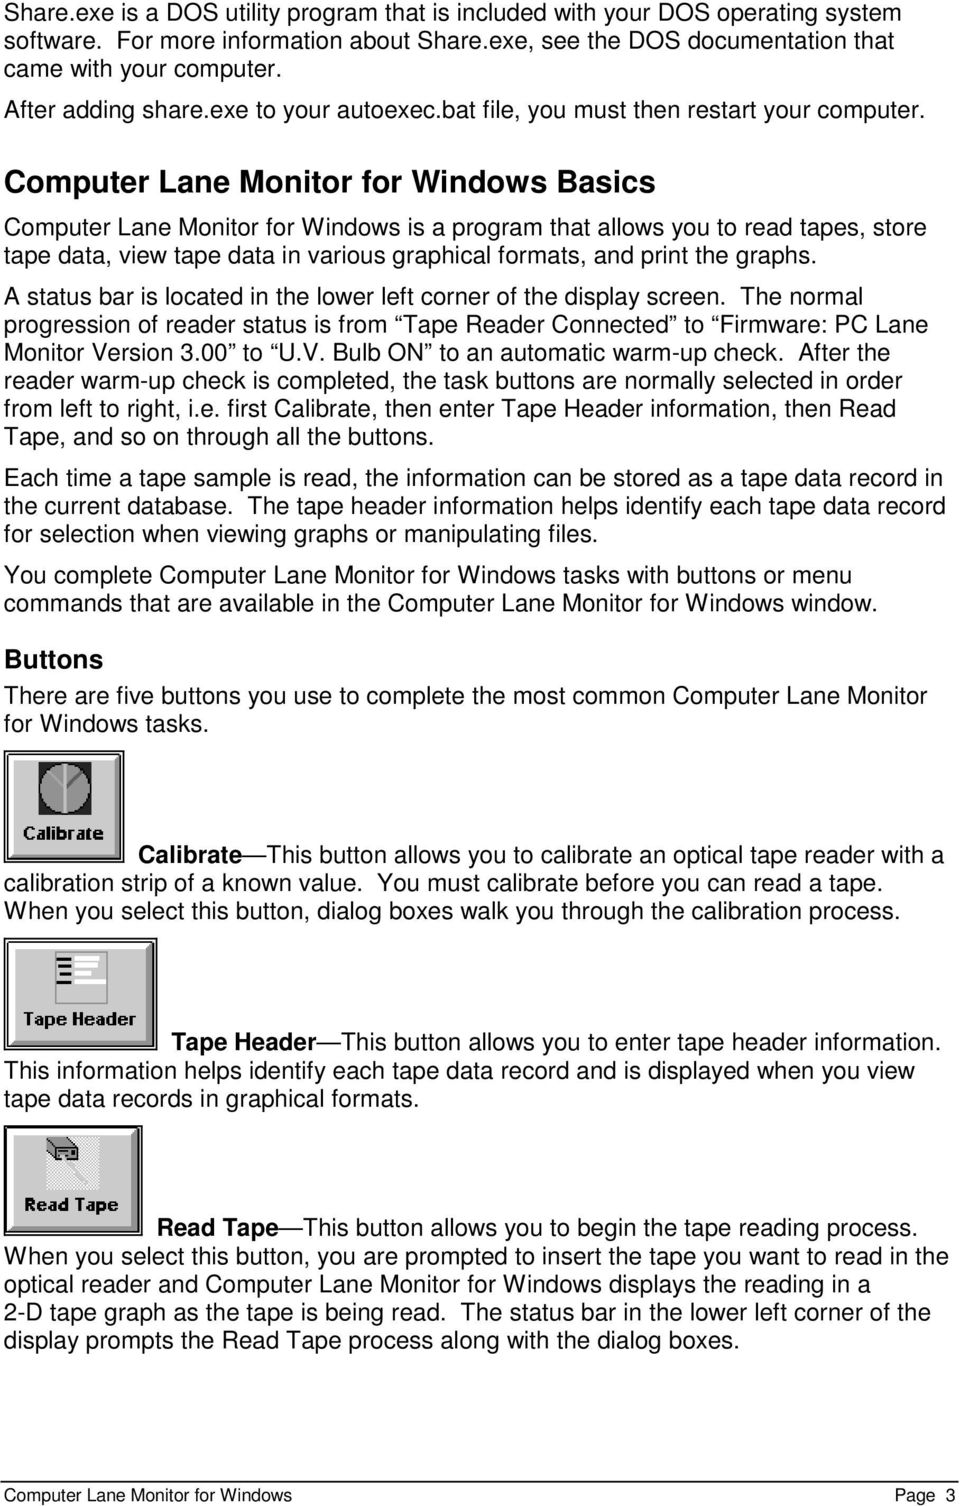 Computer Lane Monitor for Windows Basics Computer Lane Monitor for Windows is a program that allows you to read tapes, store tape data, view tape data in various graphical formats, and print the